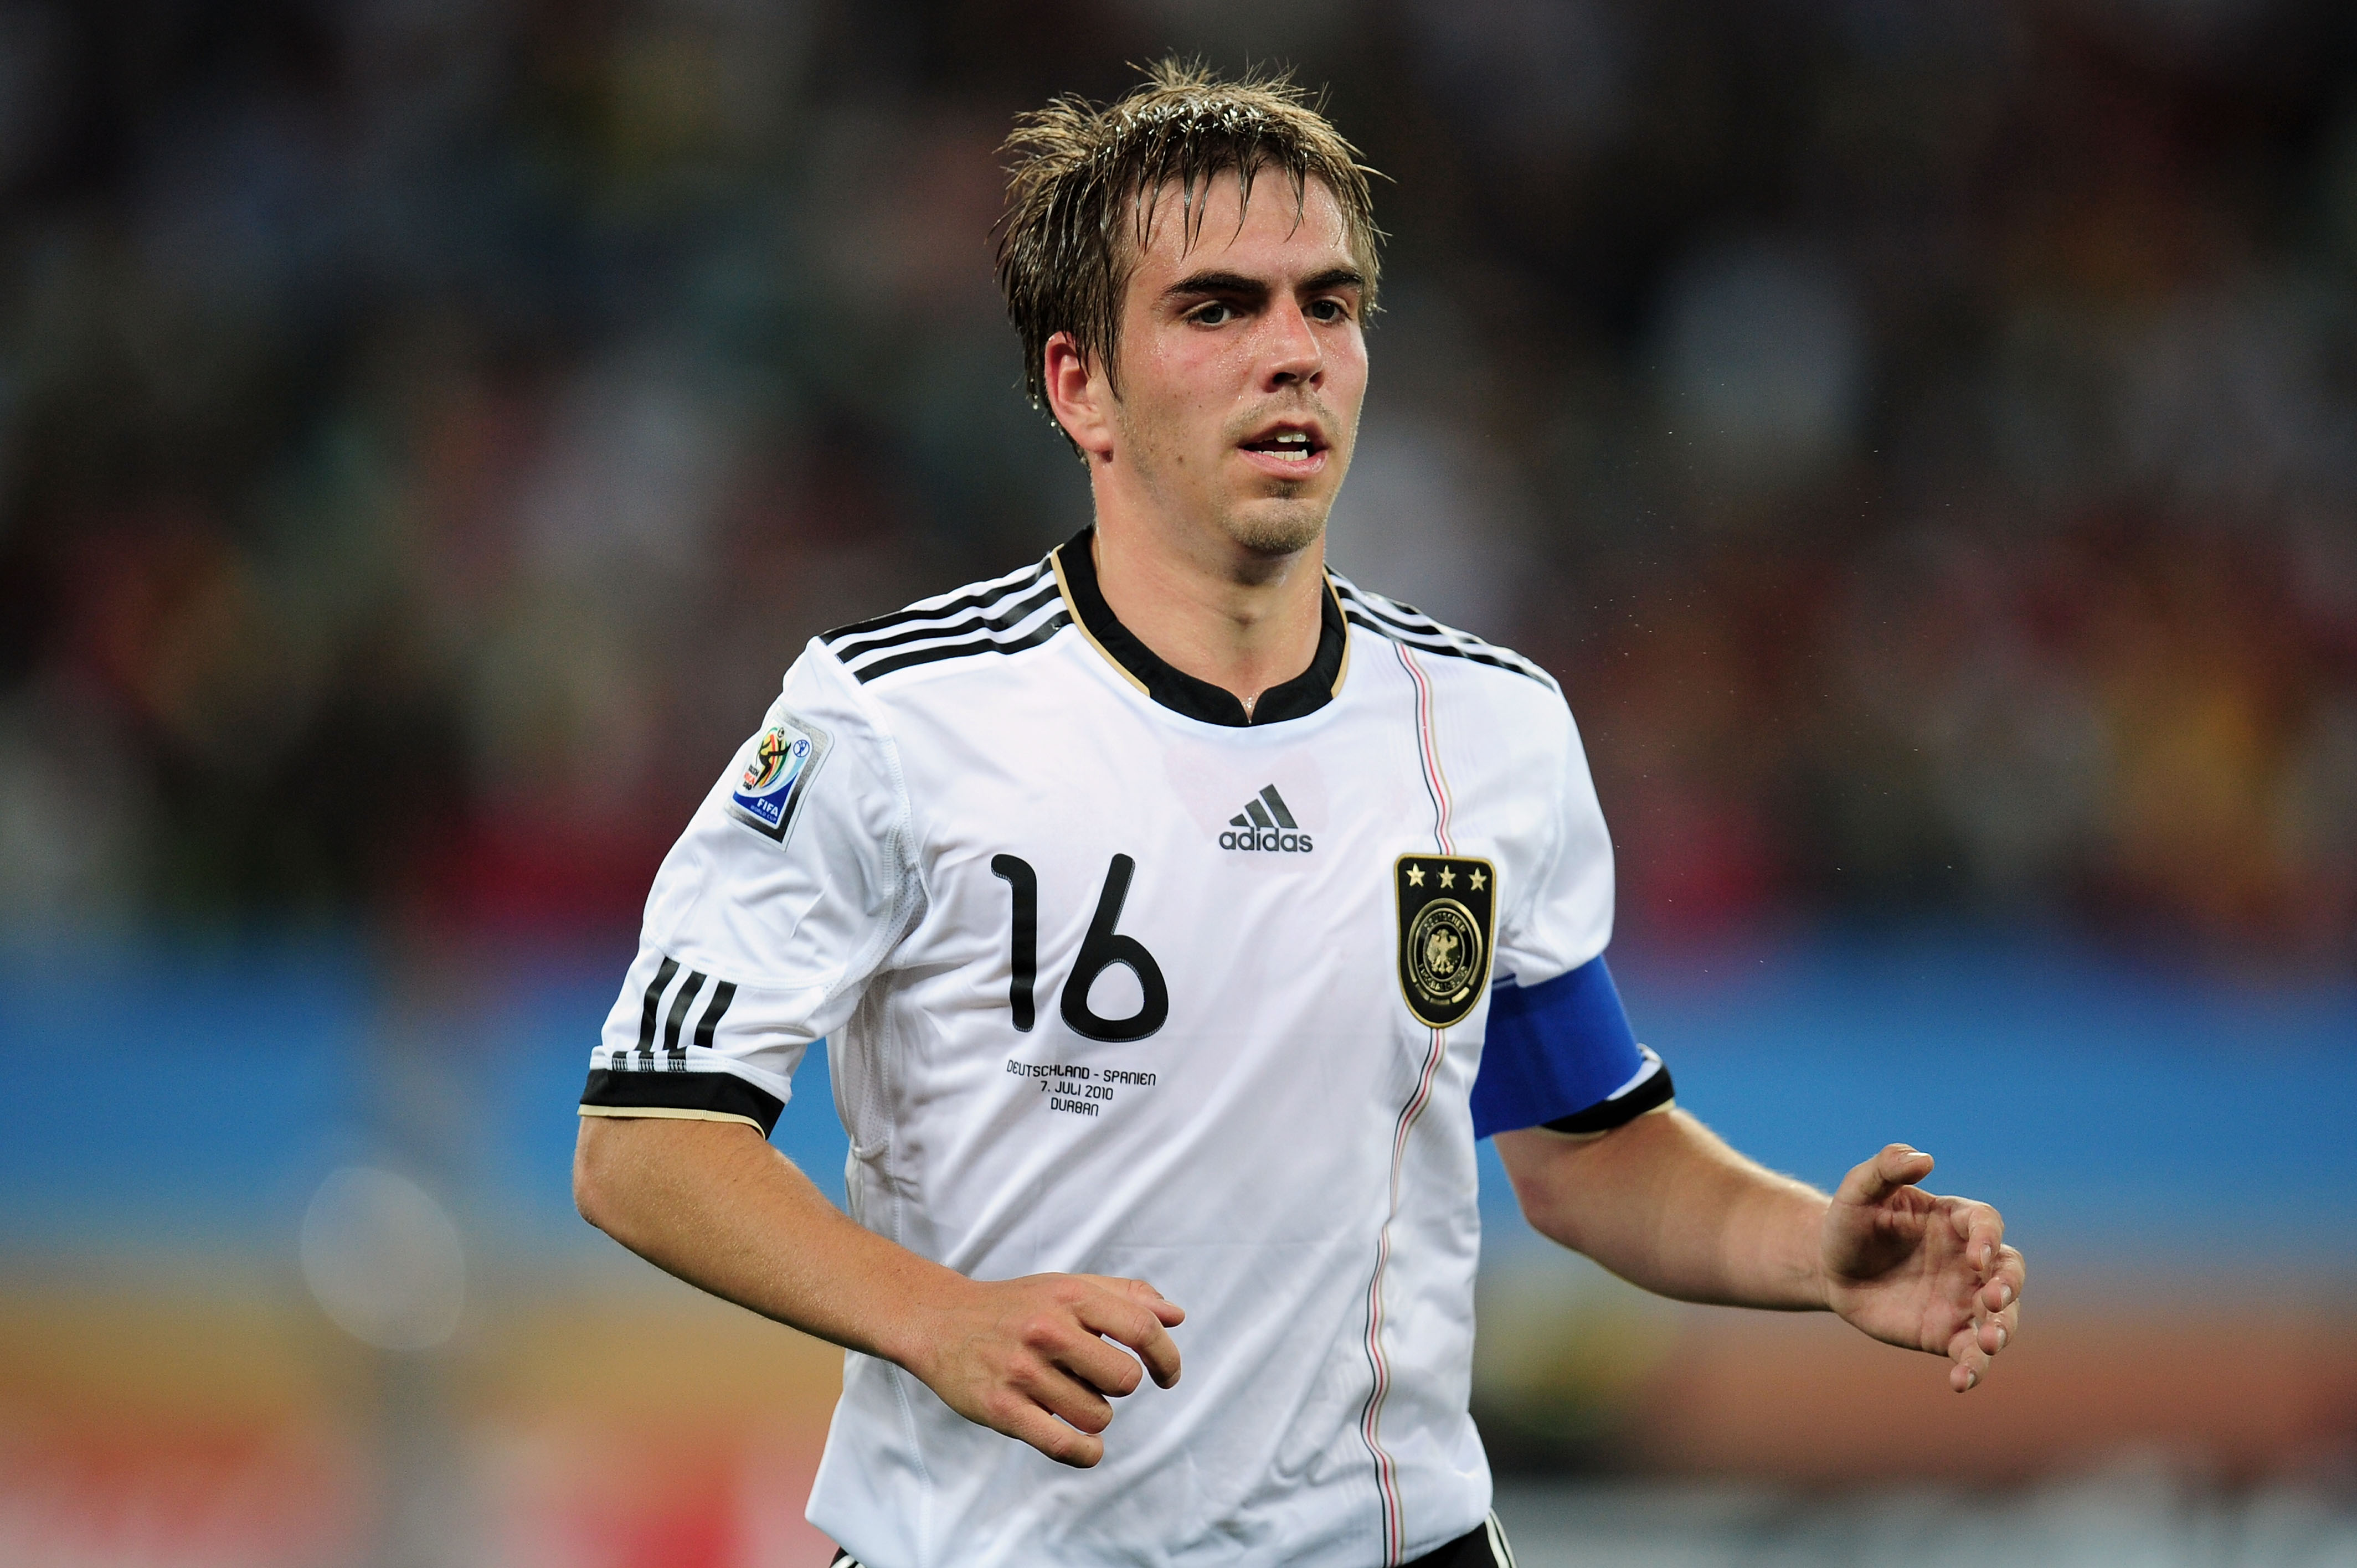 Bayern Munich Top five most significant moments of Philipp